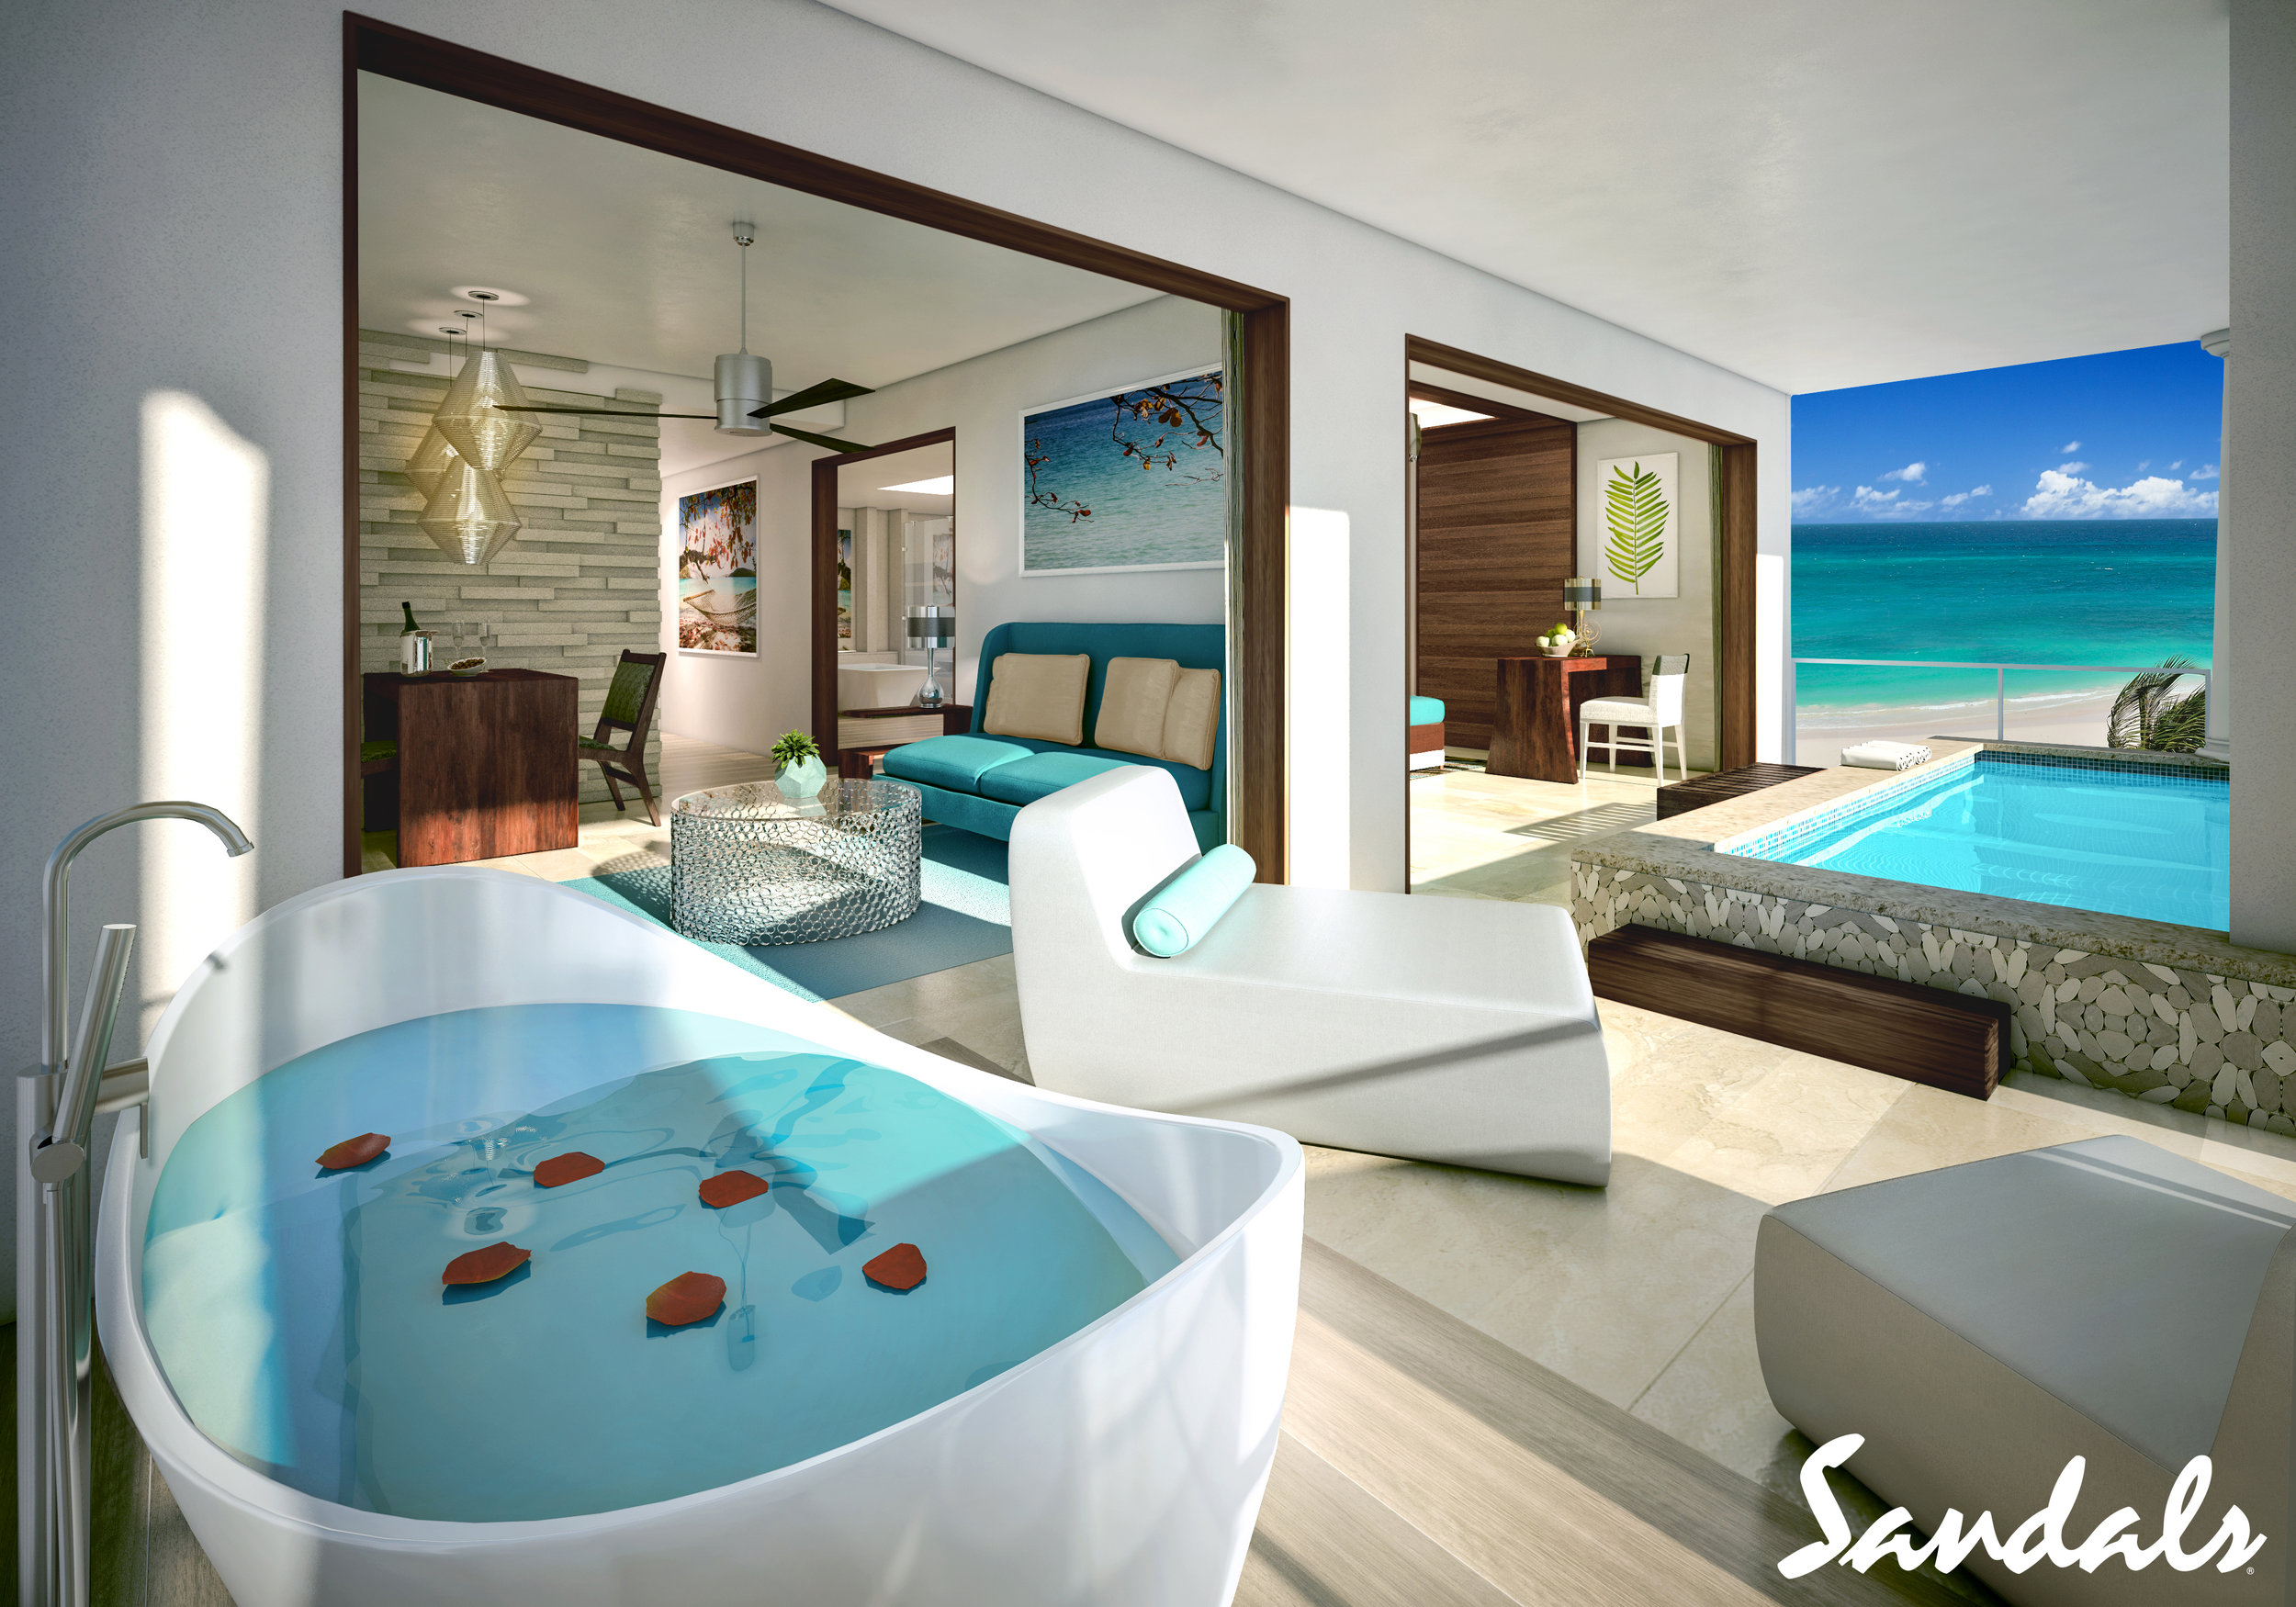 A03_SandalsBarbados_FI_05-24-17 re2 Real Outside copy.jpg